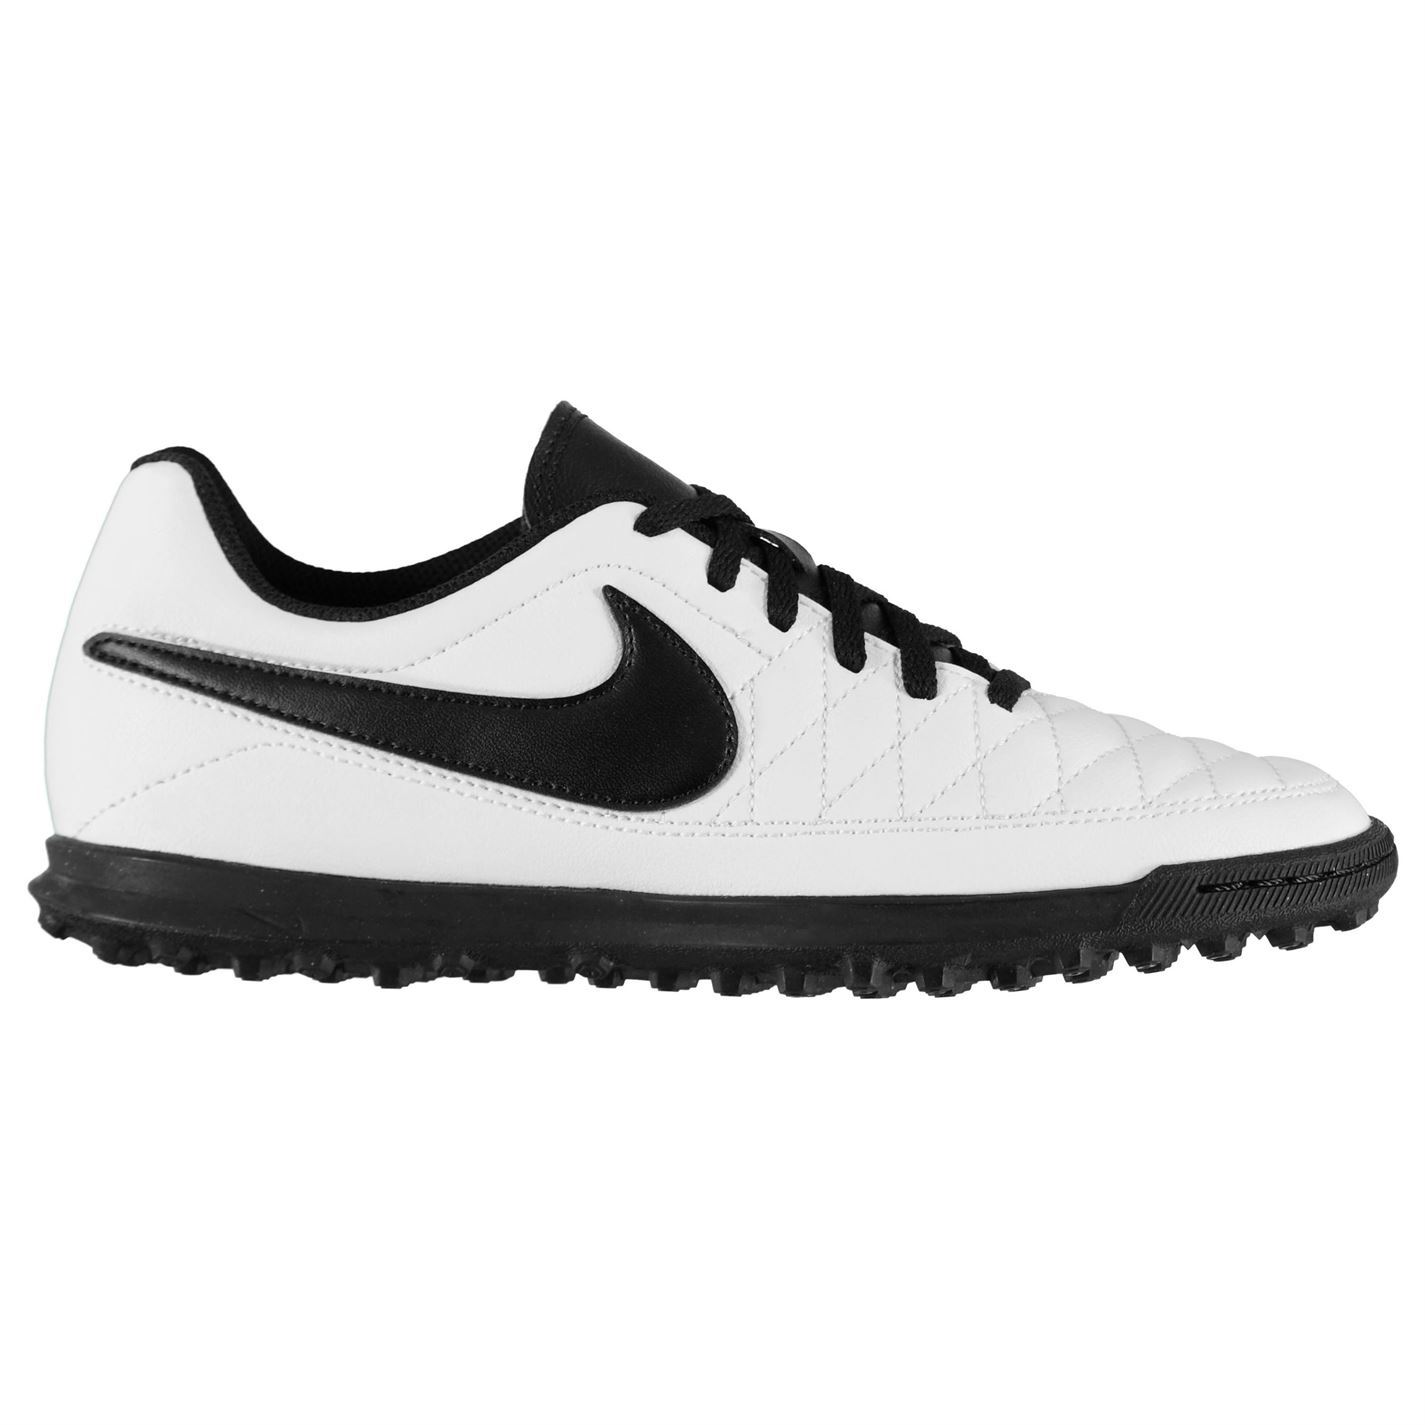 Nike-majestry-Astro-Turf-Football-Baskets-Pour-Homme-Football-Baskets-Chaussures miniature 12